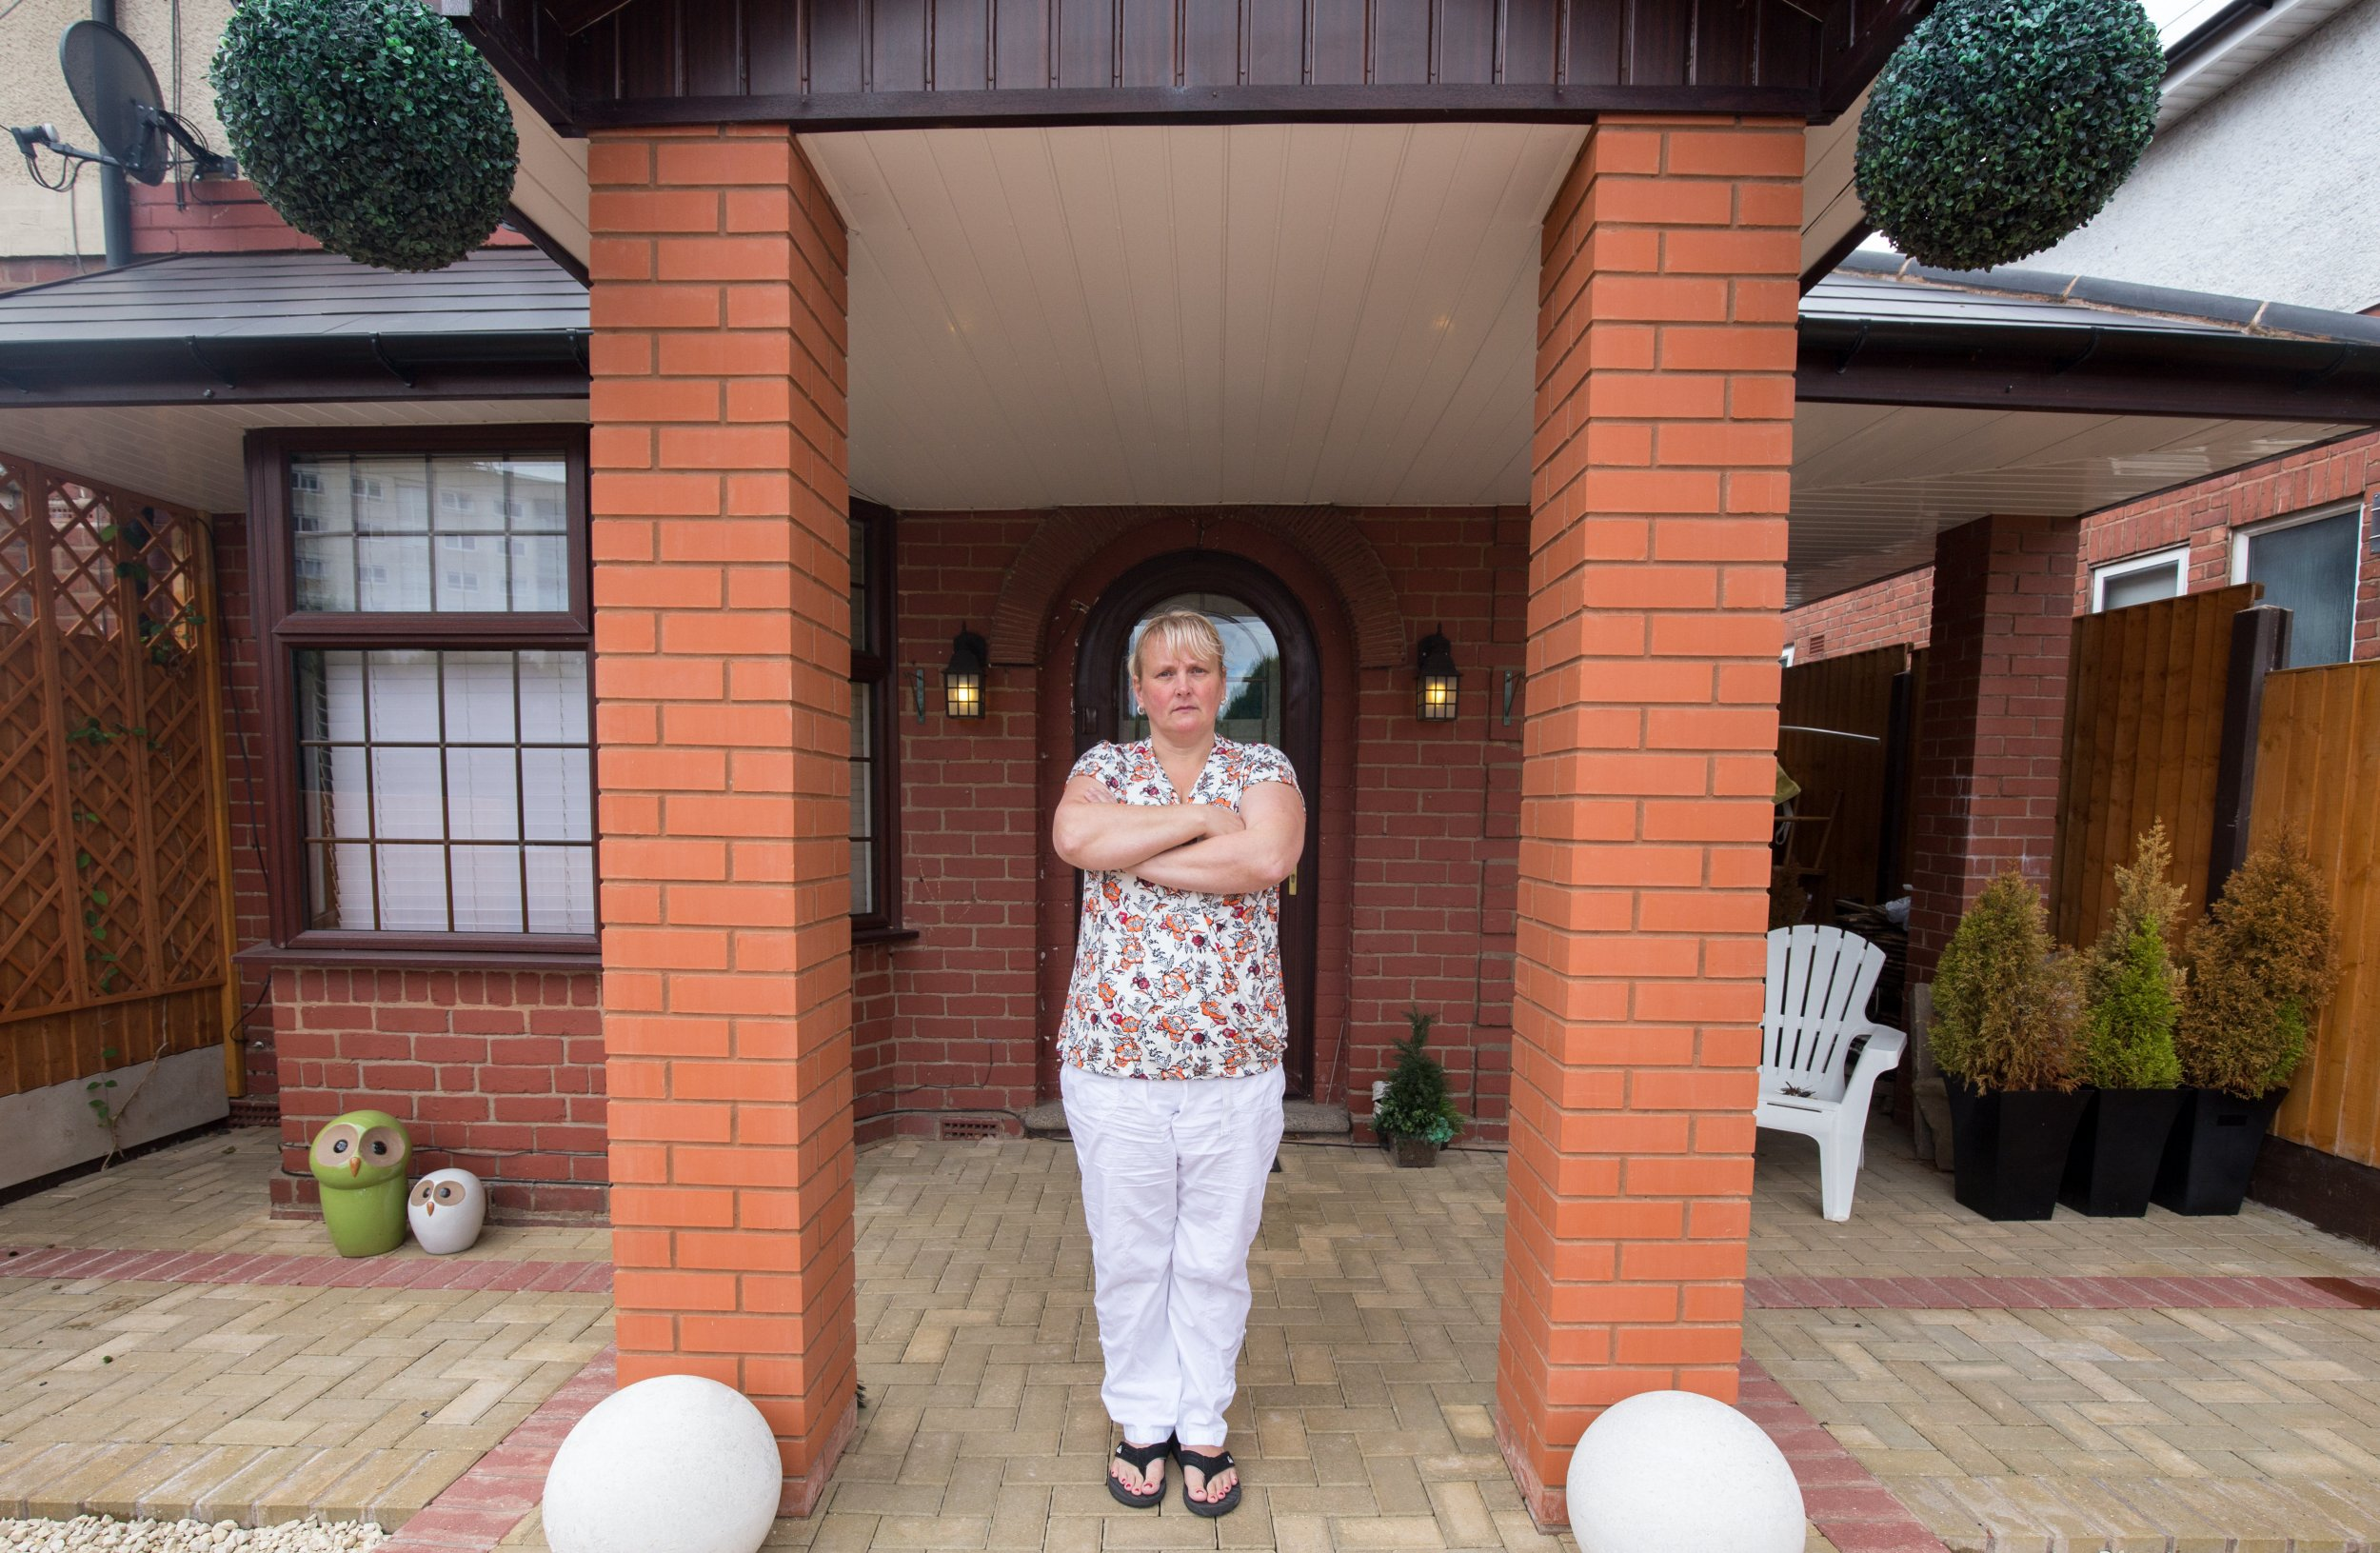 """Nicola stands outside her home on West Bulevard, Quinton, Birmingham. August 21 2016. See News Team story NTIHOUSE: A family who invested their life savings in an £11,000 extension have been ordered to tear down the build, despite getting the plans approved three years ago. Nicola Graham-O'Connor, 49, was shocked when she received a letter three weeks after completing the work giving her just 28 days to get rid of it. She claimed Birmingham Council told her she didn't need permission before adding the pillars, canopy and railings onto her semi-detached property three years ago. But council workers have now said it is """"out of character"""", """"out of scale"""" and """"dominating"""" and said retrospective planning permission is """"unlikely to be forthcoming""""."""